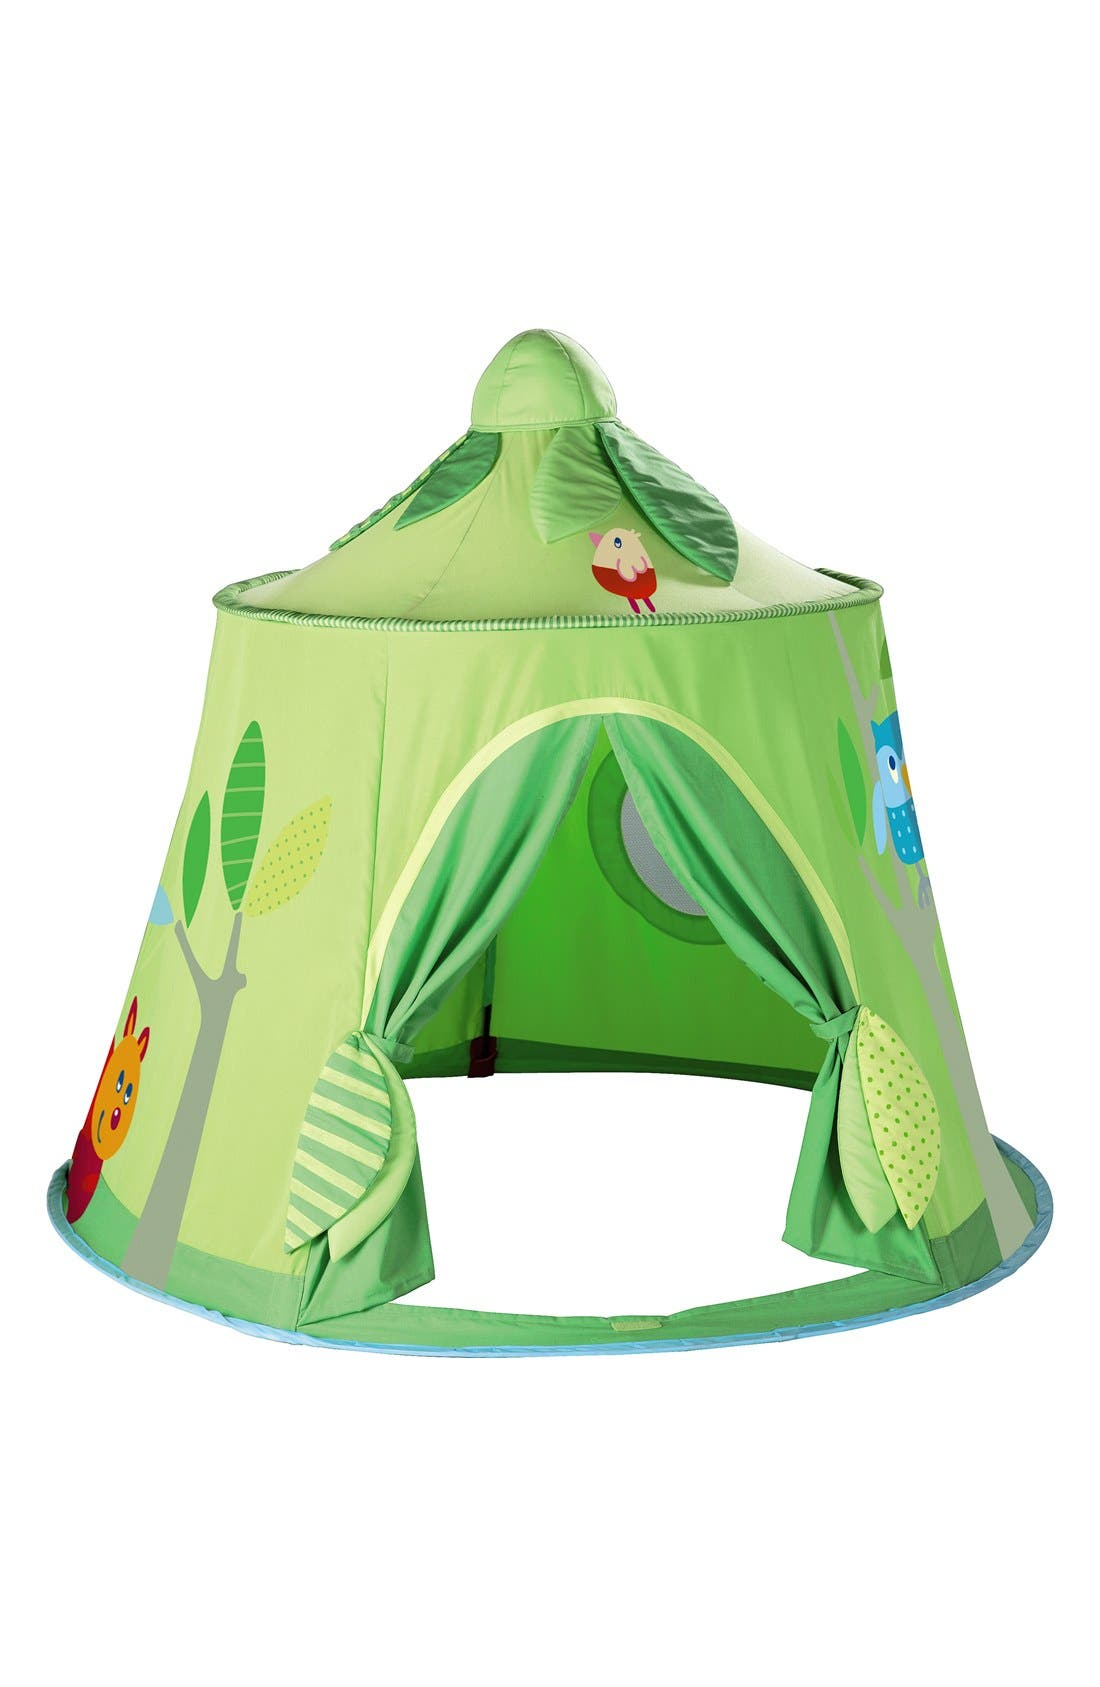 Main Image - HABA 'Magic Forest' Play Tent